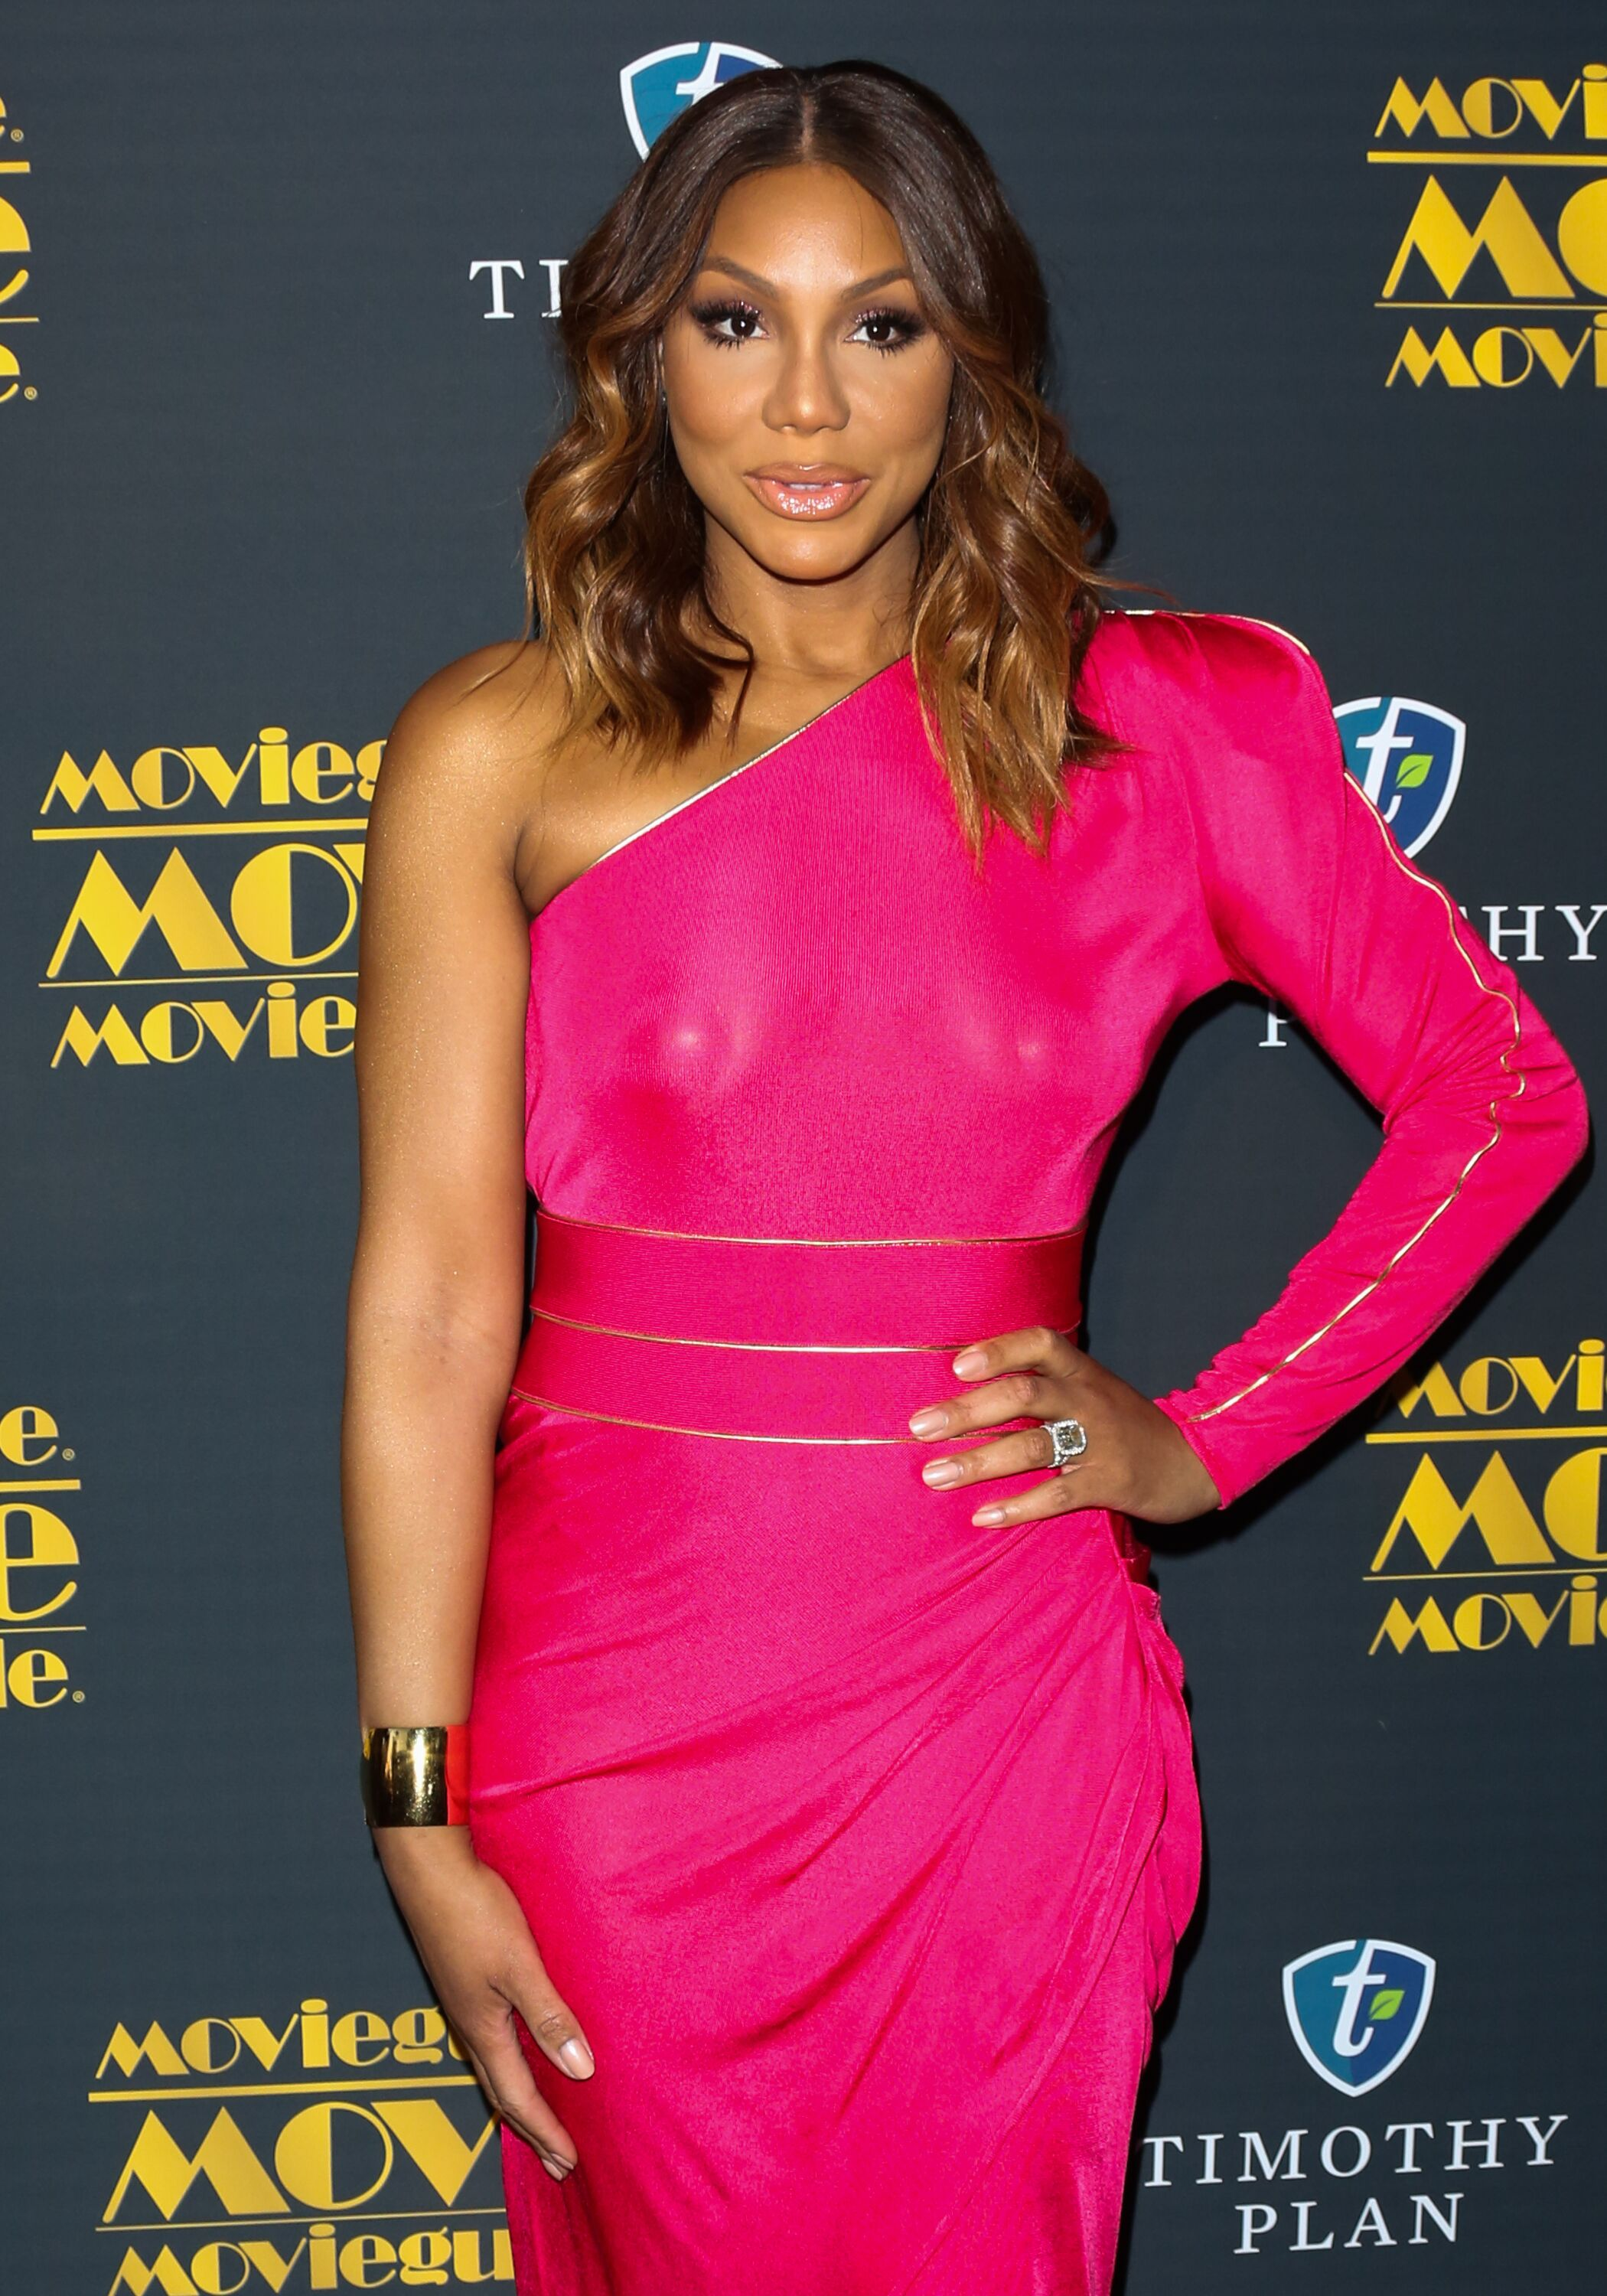 Tamar Braxton at the 24th Annual Movieguide Awards Gala in February 2016. | Photo: Getty Images